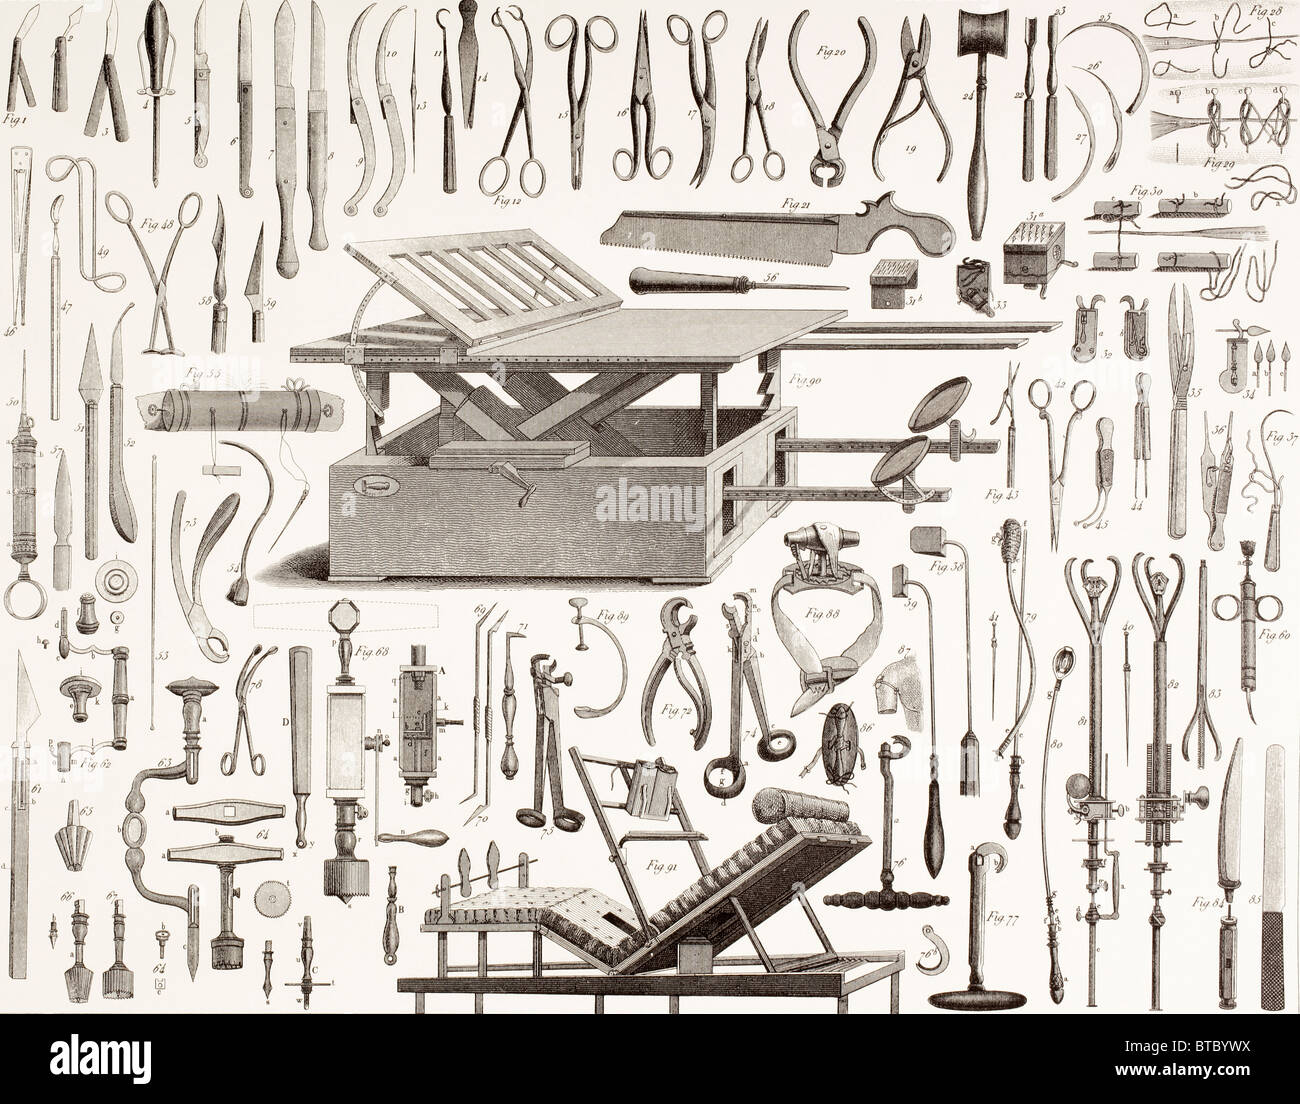 19th century surgical instruments. - Stock Image